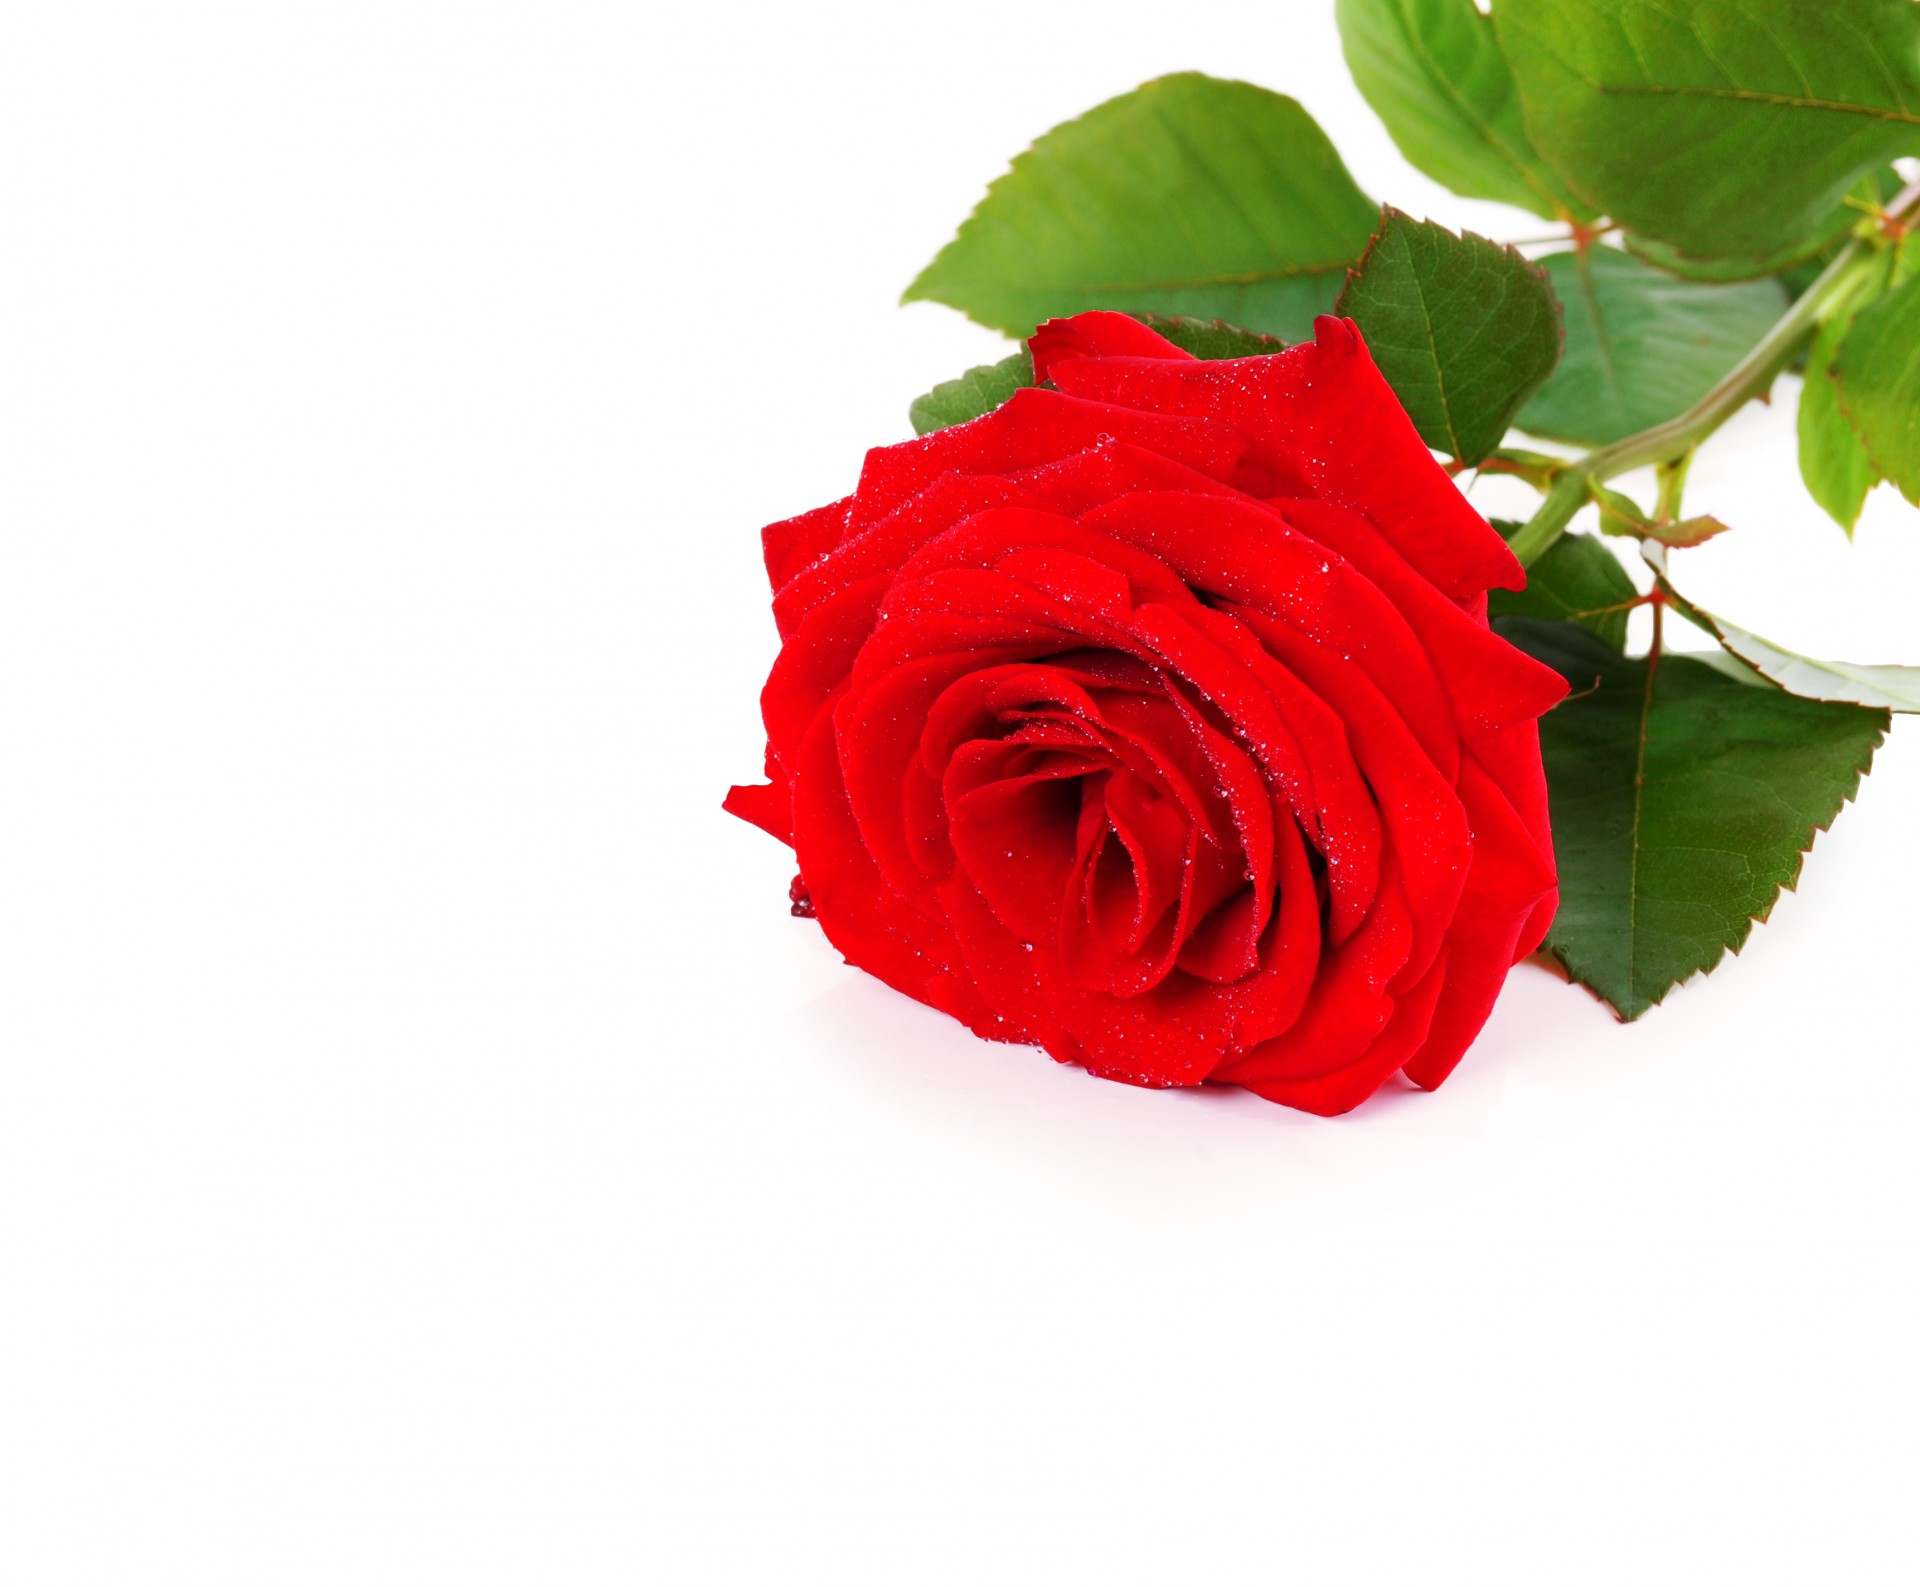 Red Roses On A White Background Free Stock Photo - Public Domain ...